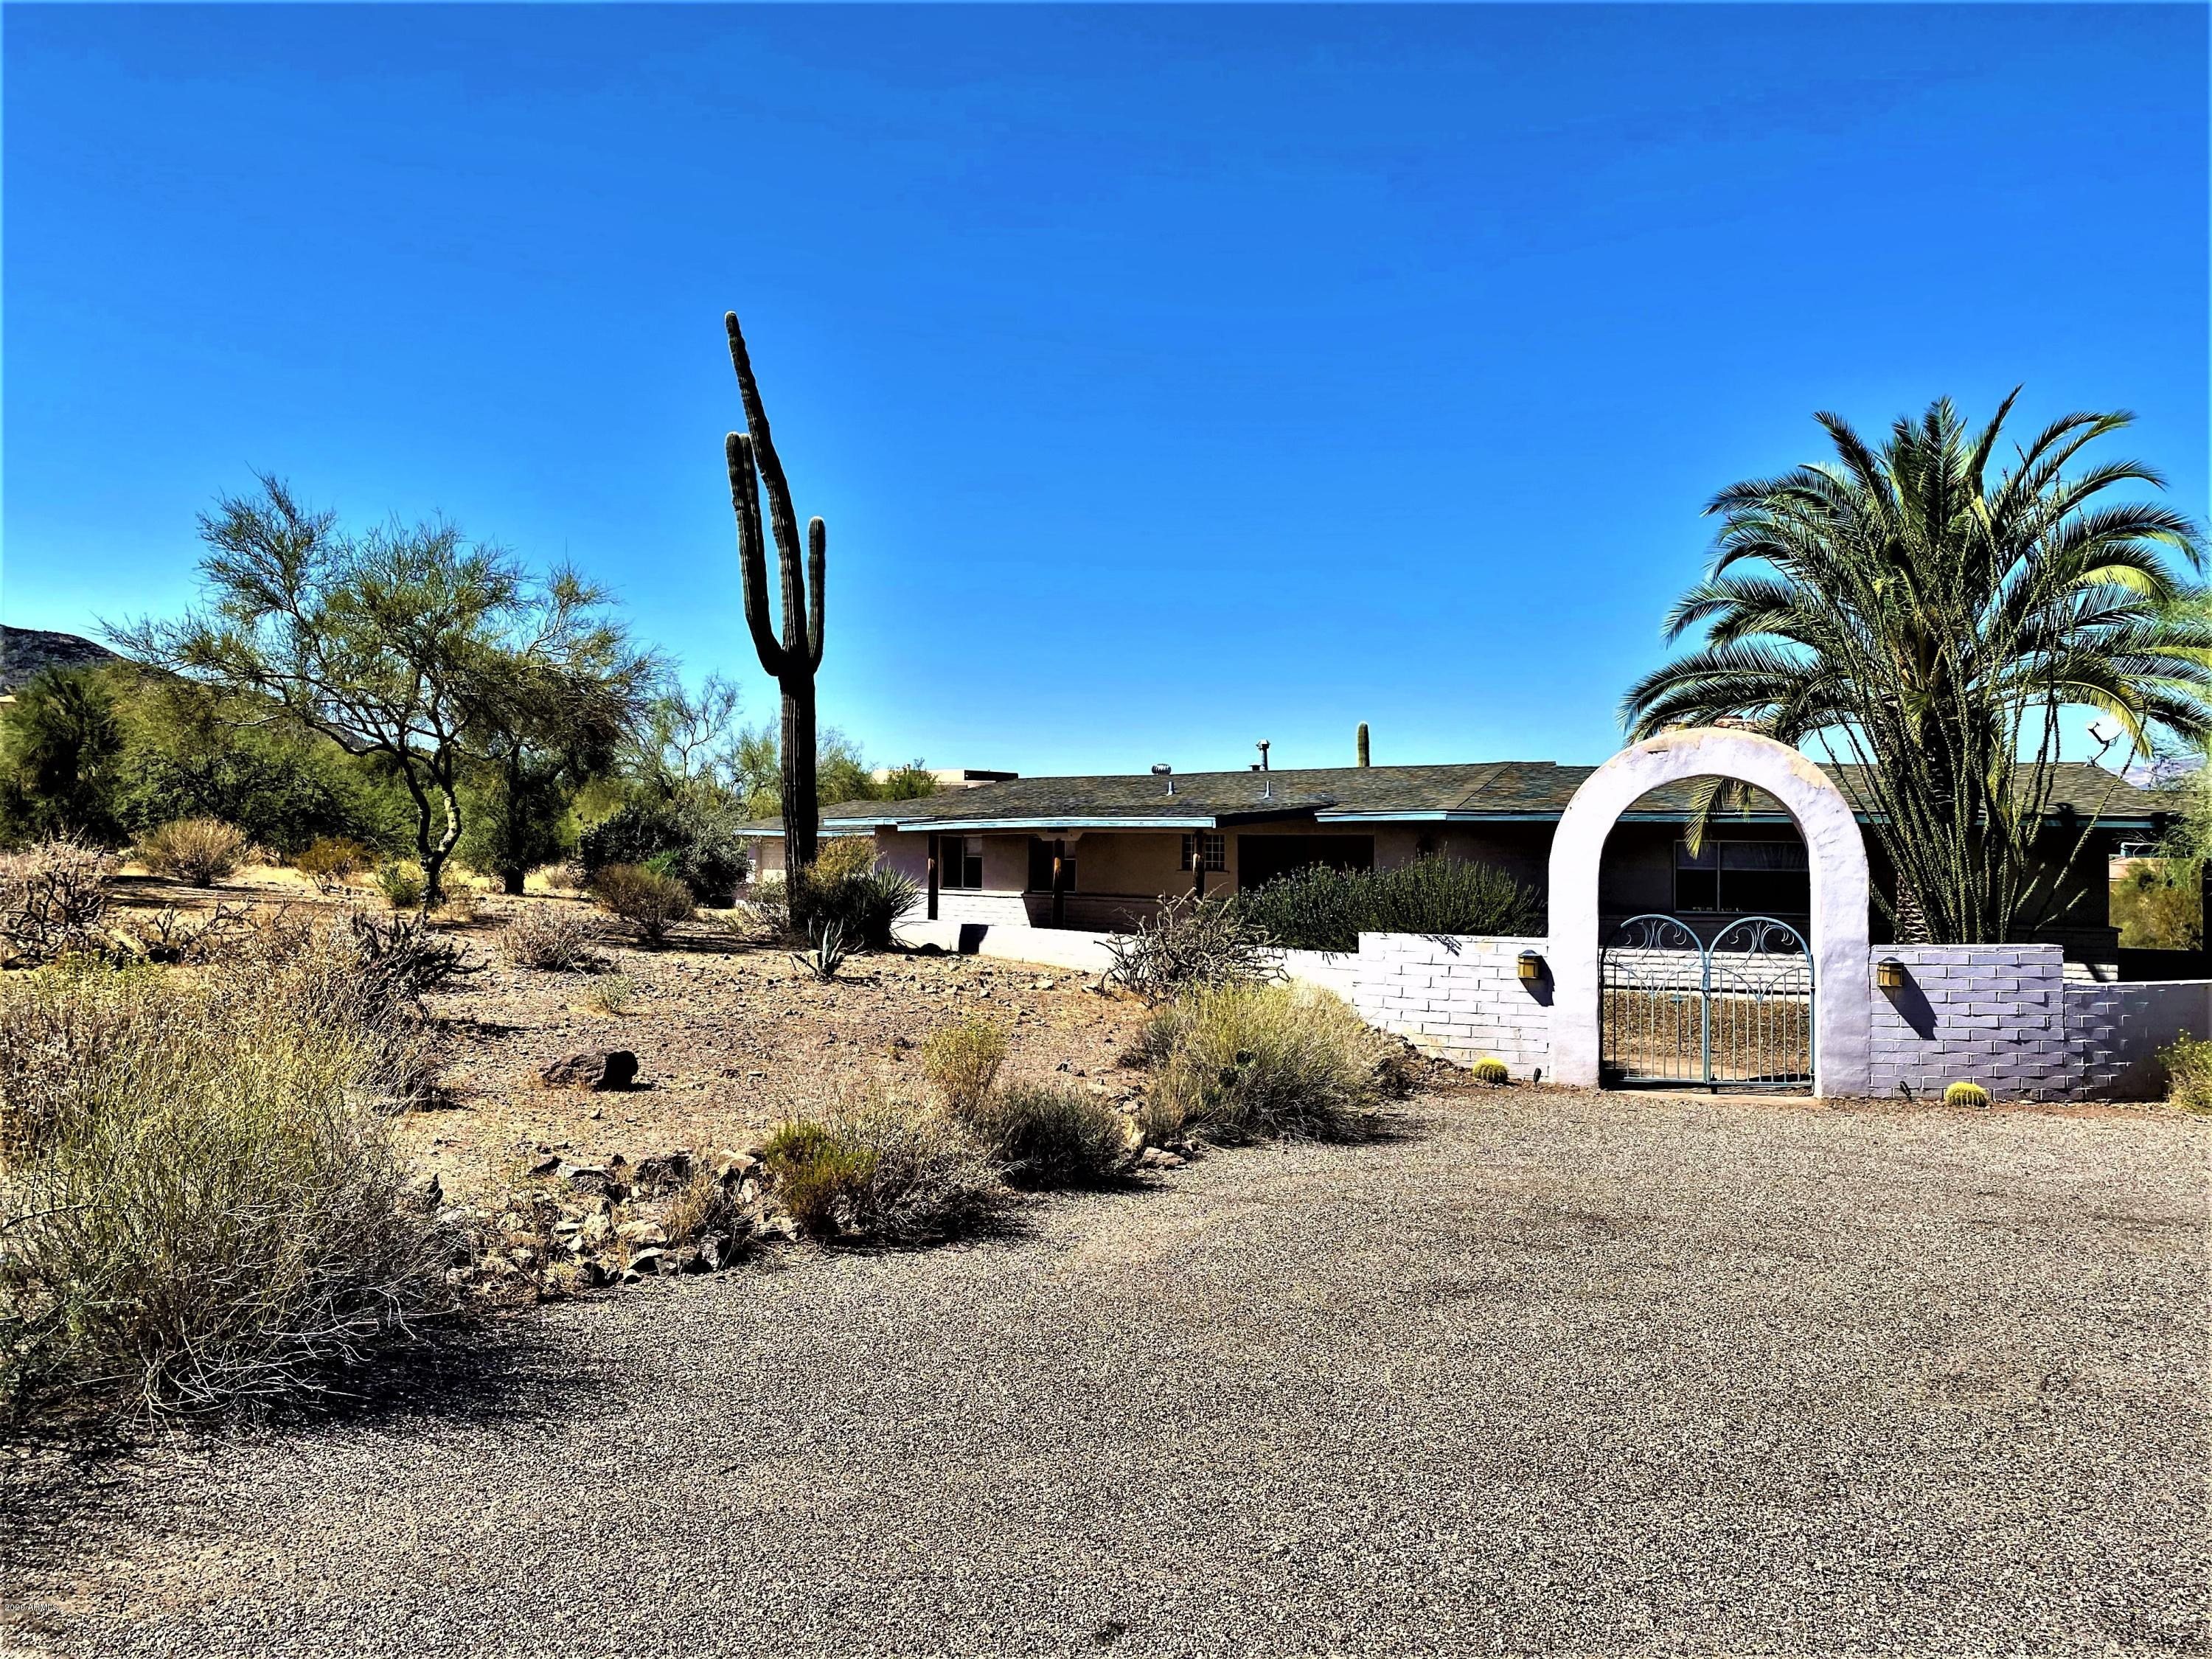 Nonchalant Avenue, Carefree, Arizona 85377, 2 Bedrooms Bedrooms, ,2 BathroomsBathrooms,Residential Rental,For Sale,Nonchalant,6139309